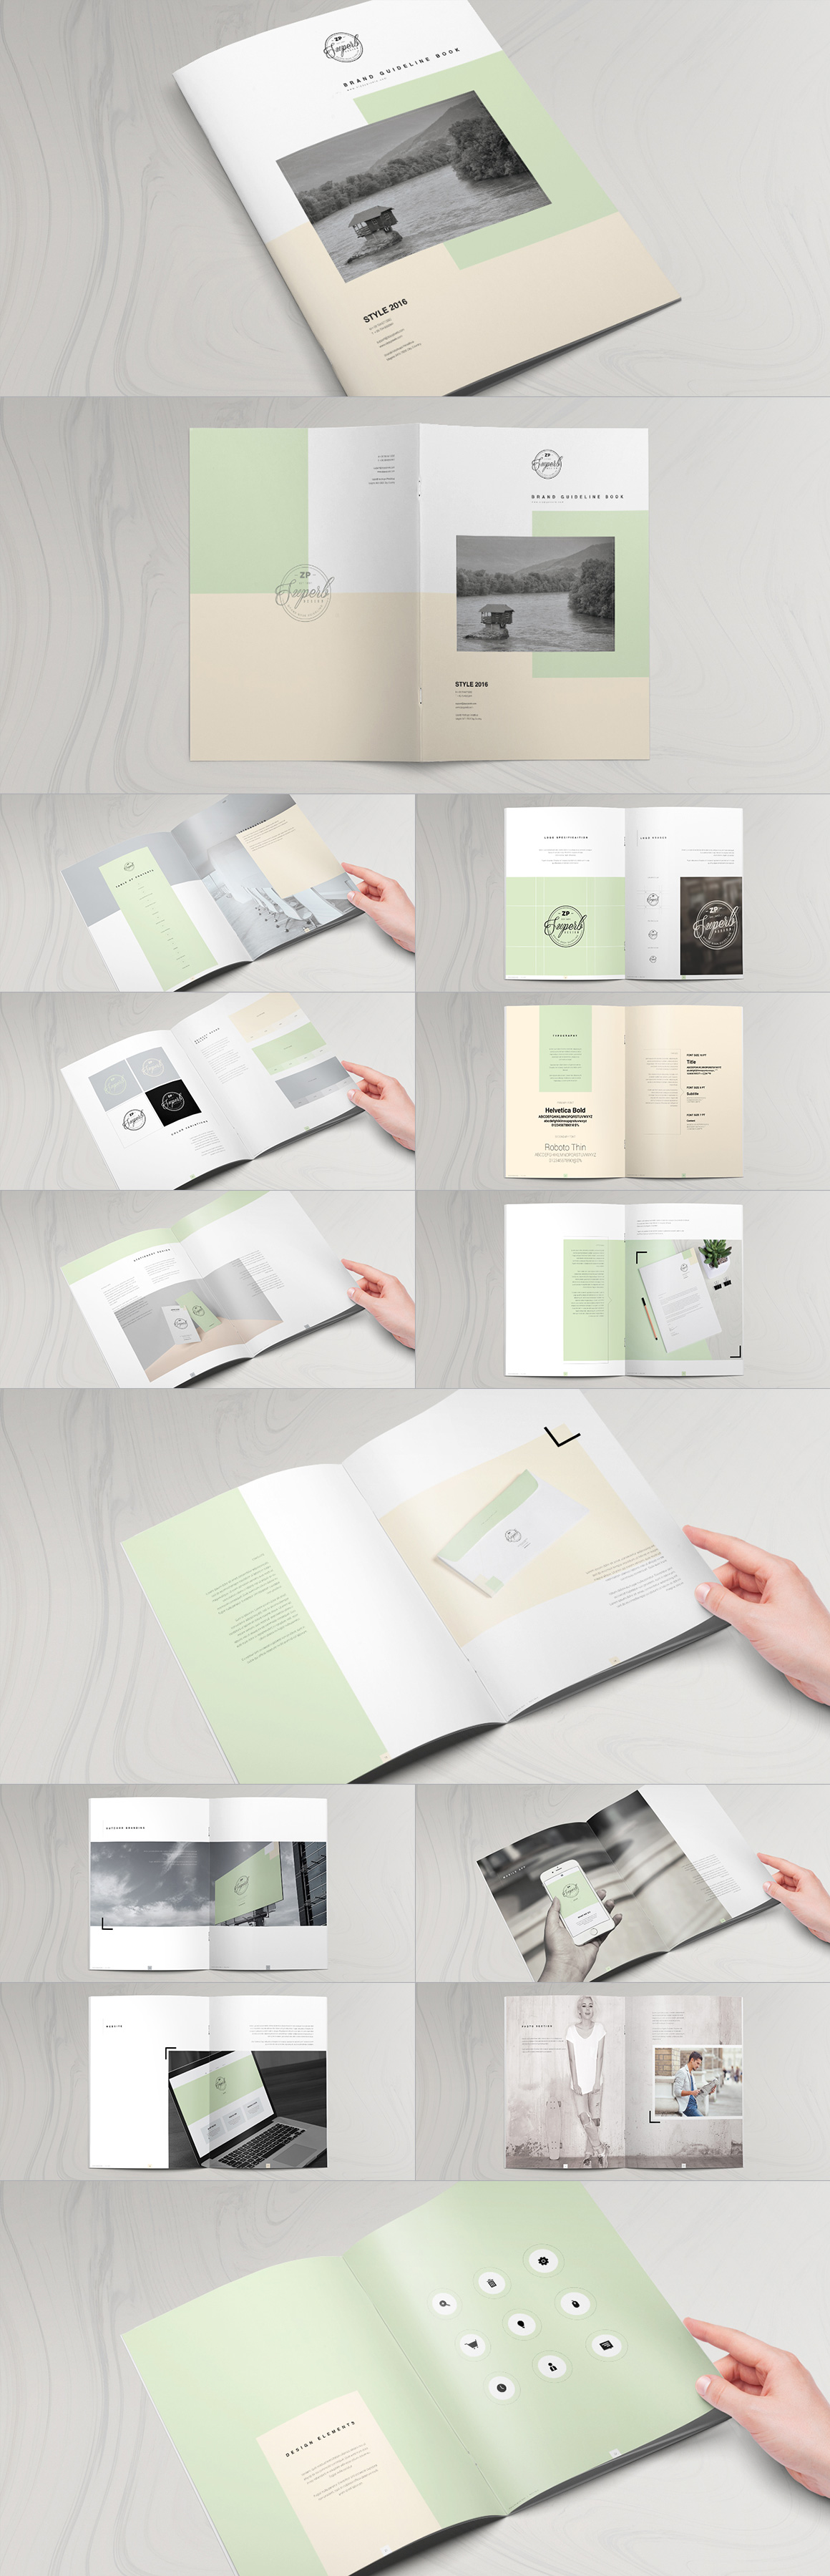 Style Guide & Brand Book Templates-strip14